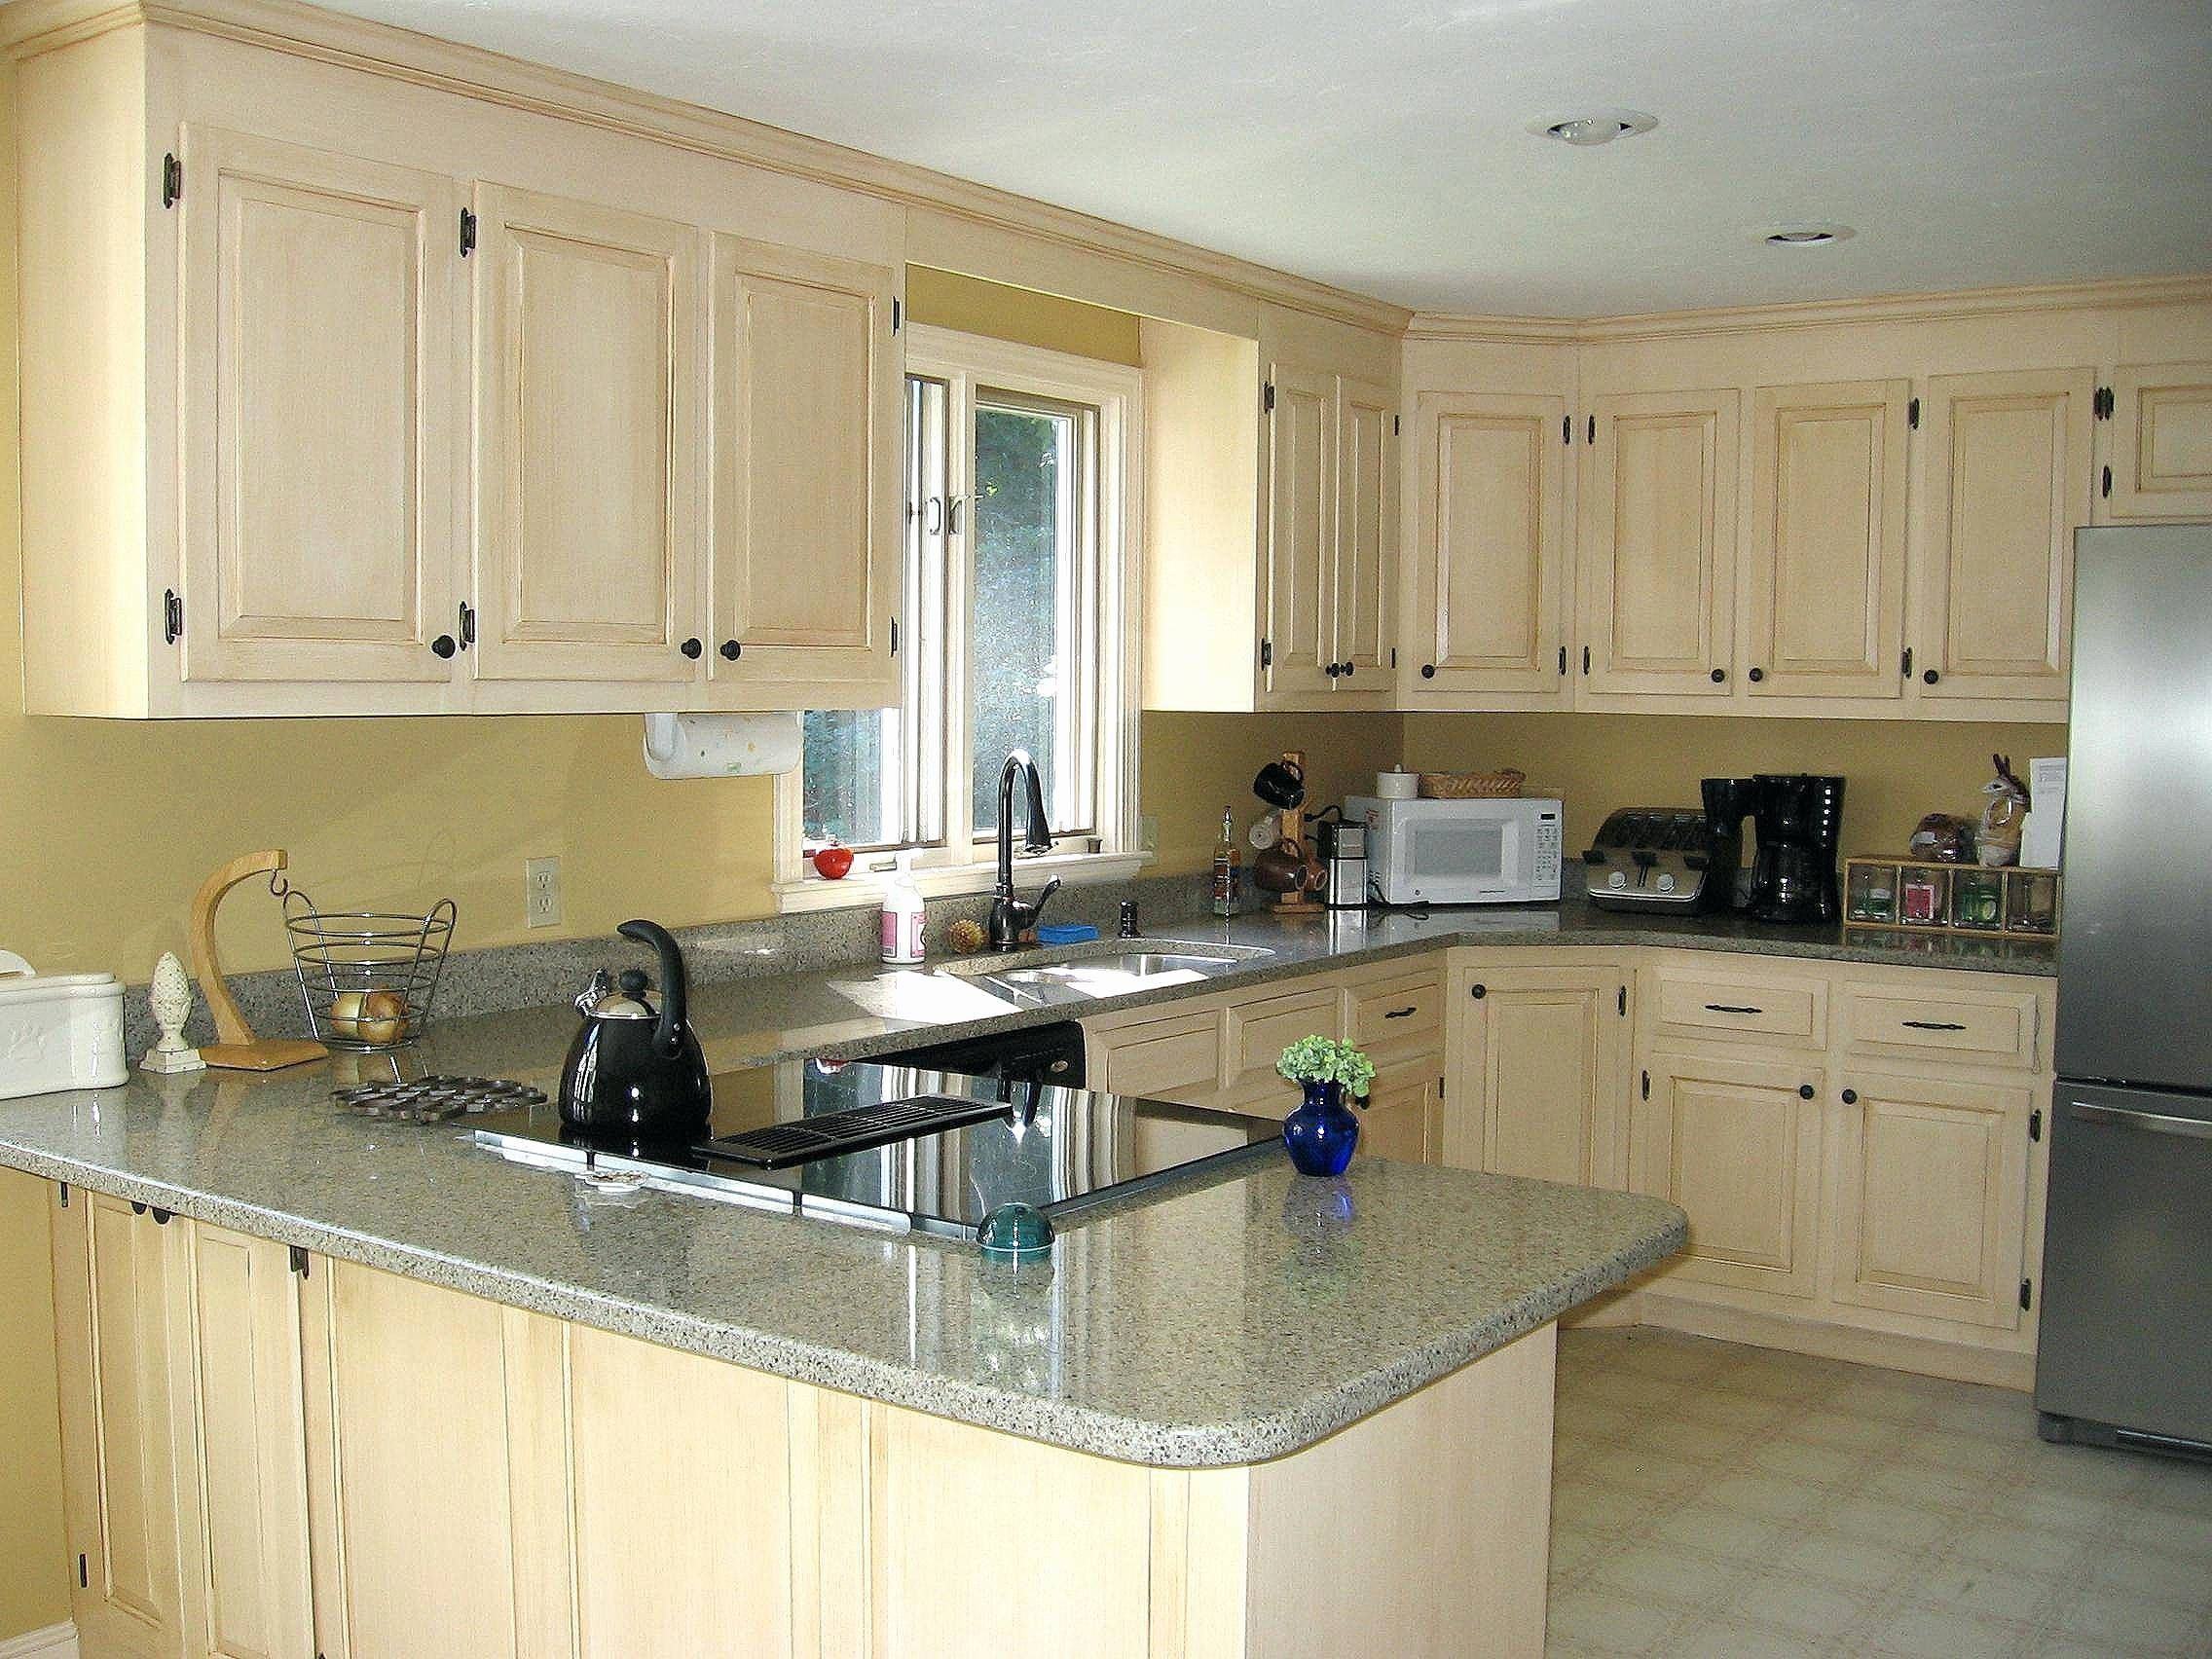 Inspirational Cost To Restain Kitchen Cabinets Repainting Kitchen Cabinets Simple Kitchen Cabinets Painting Kitchen Cabinets